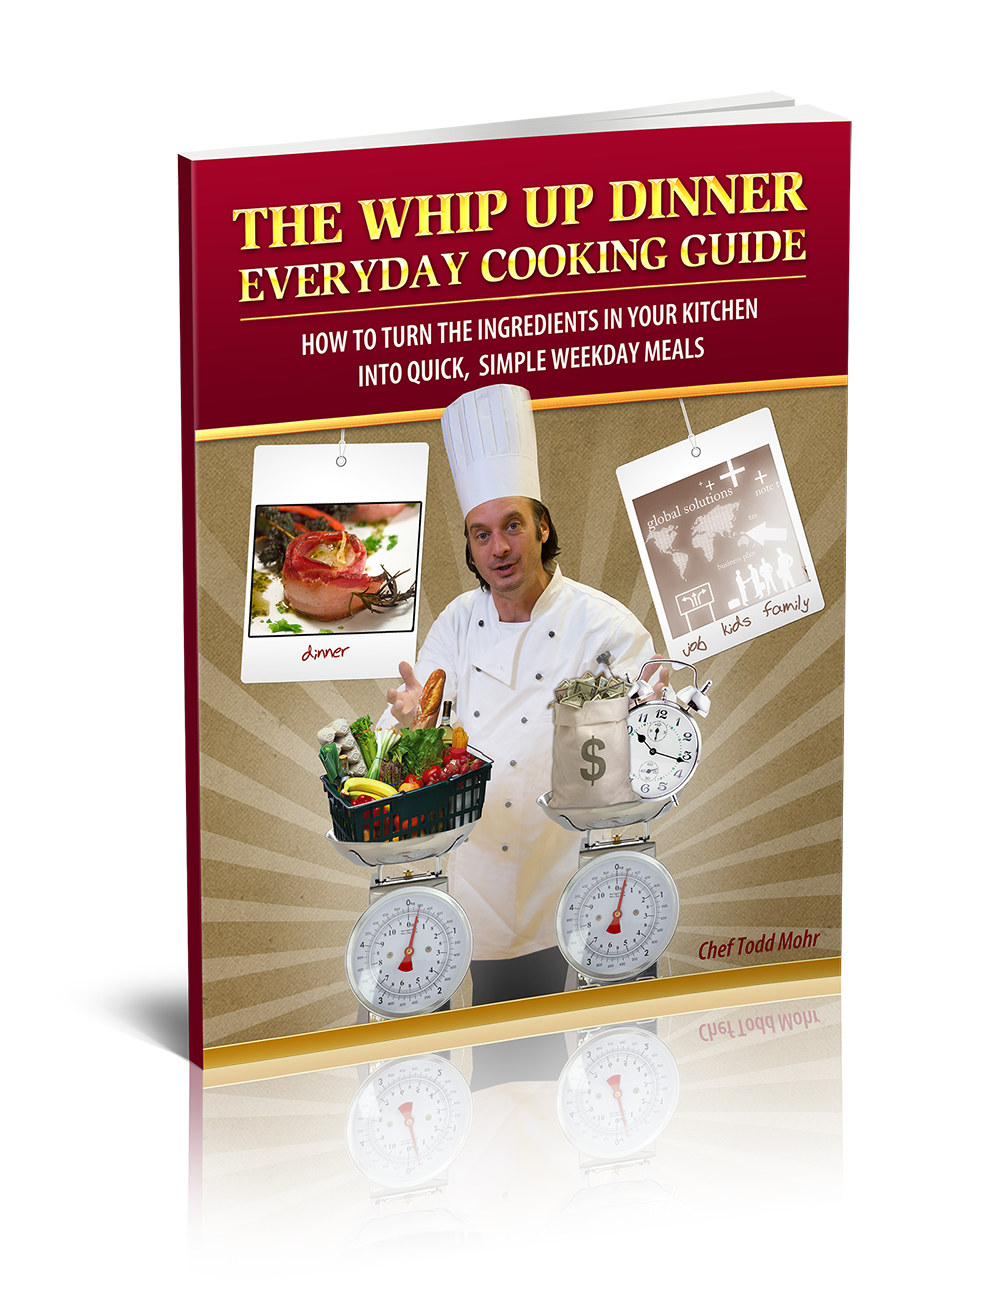 Whip Up Dinner Cooking Guide